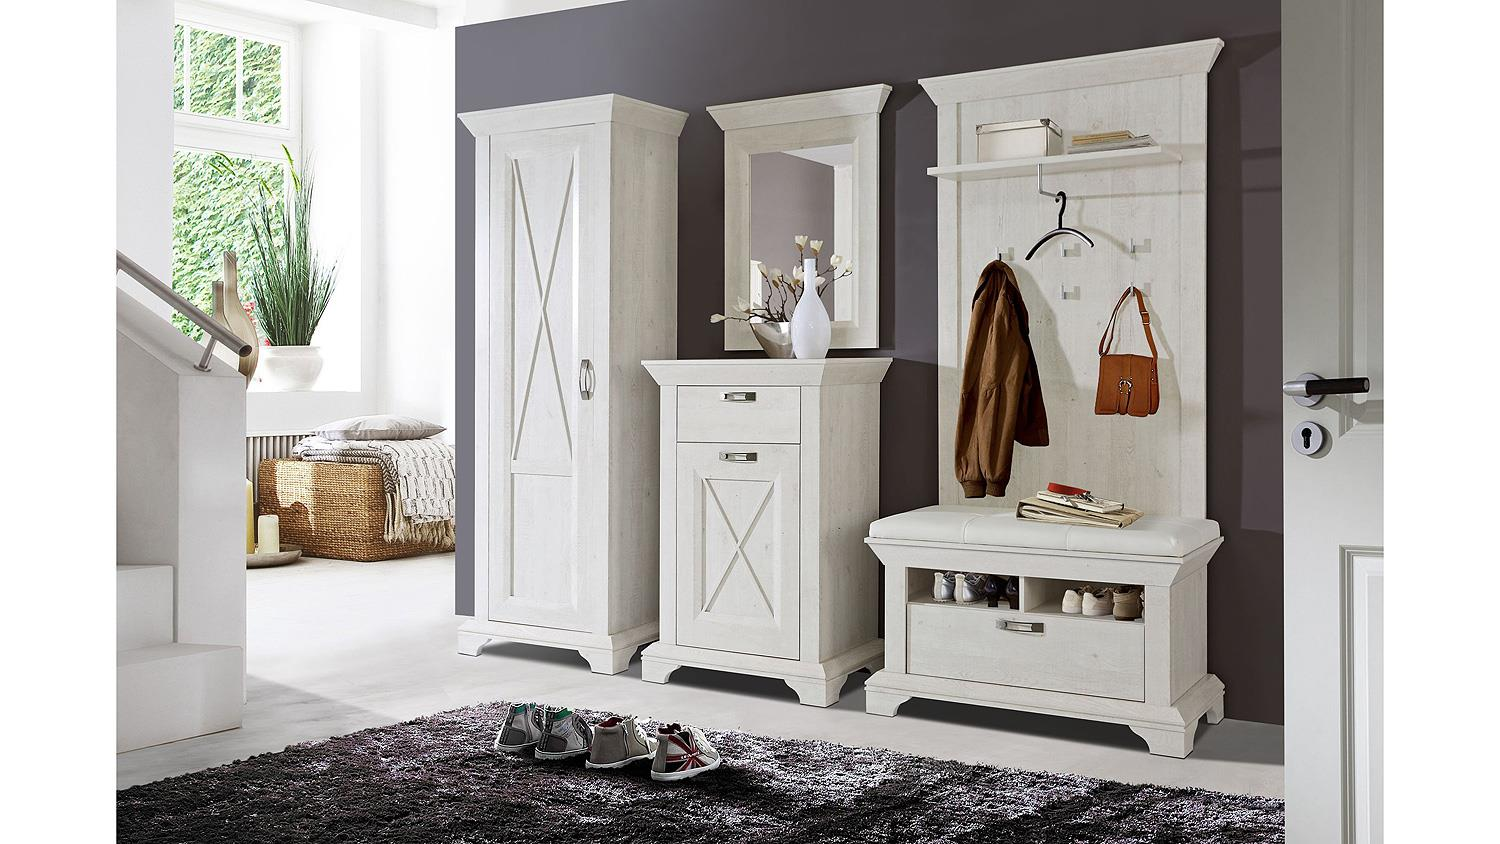 kommode kashmir garderobe schrank in pinie wei. Black Bedroom Furniture Sets. Home Design Ideas